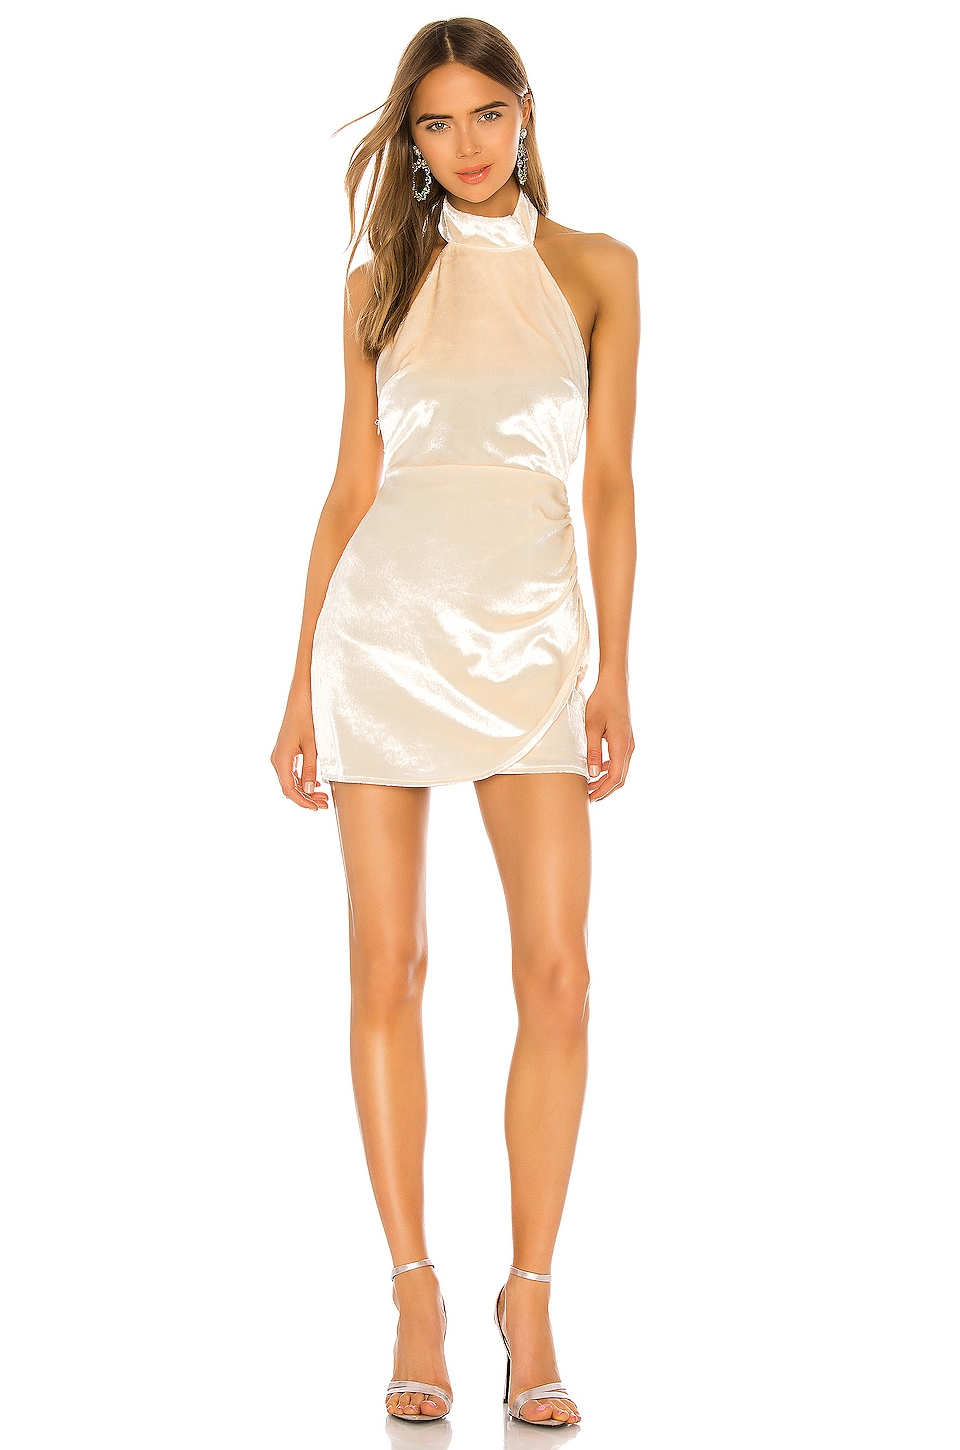 Lovers + Friends Mclaughlin Mini Dress in Prosecco